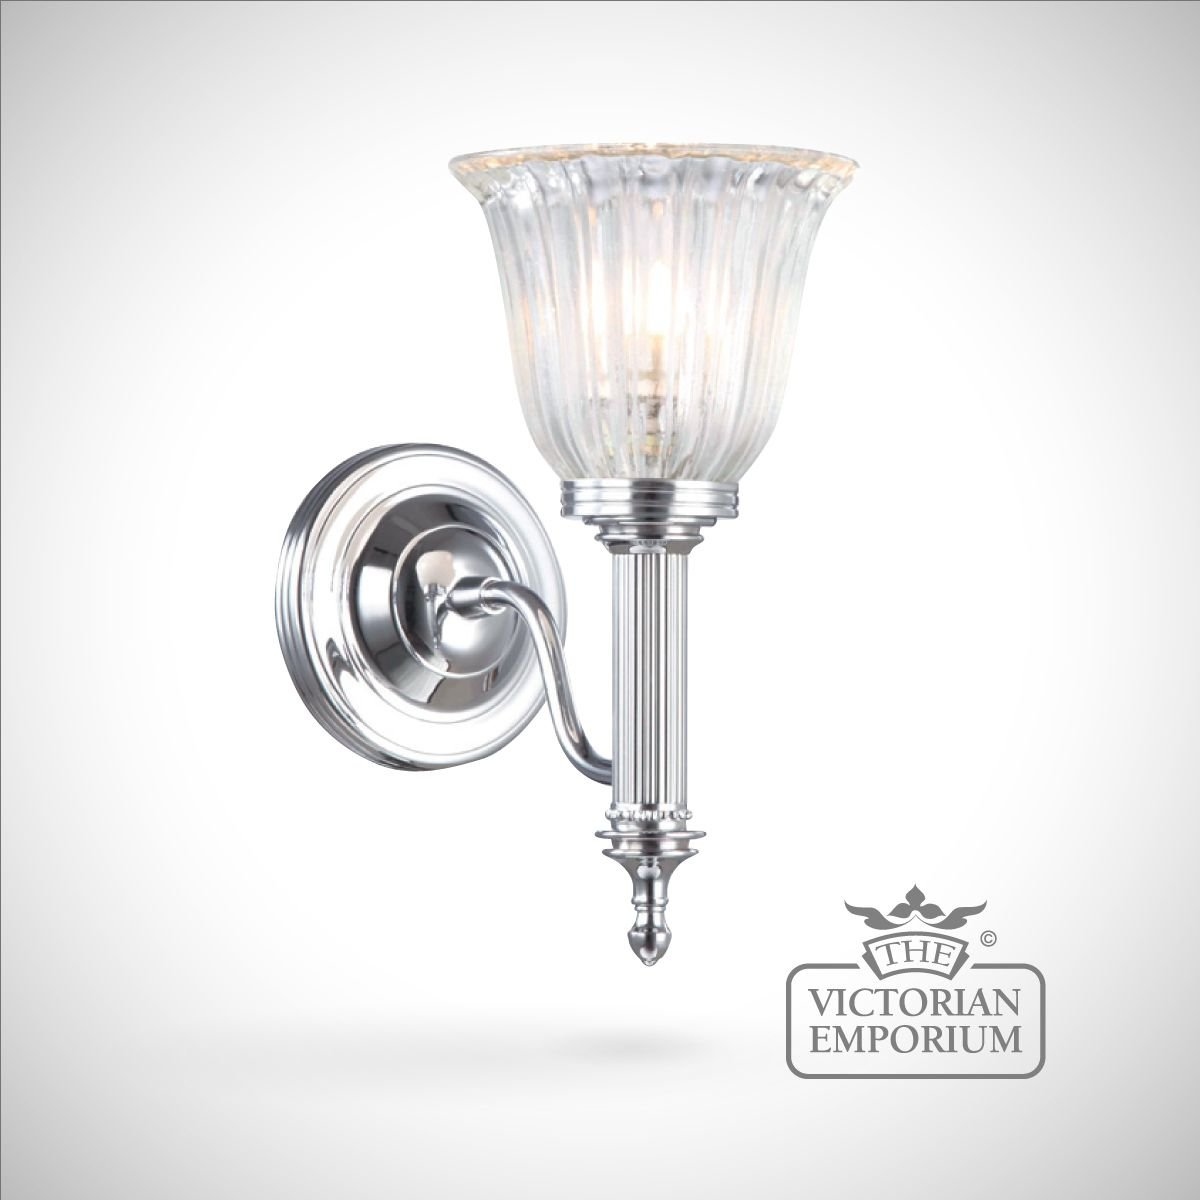 Decorative Wall Lights For Bathroom : Victorian bathroom lighting with luxury inspirational